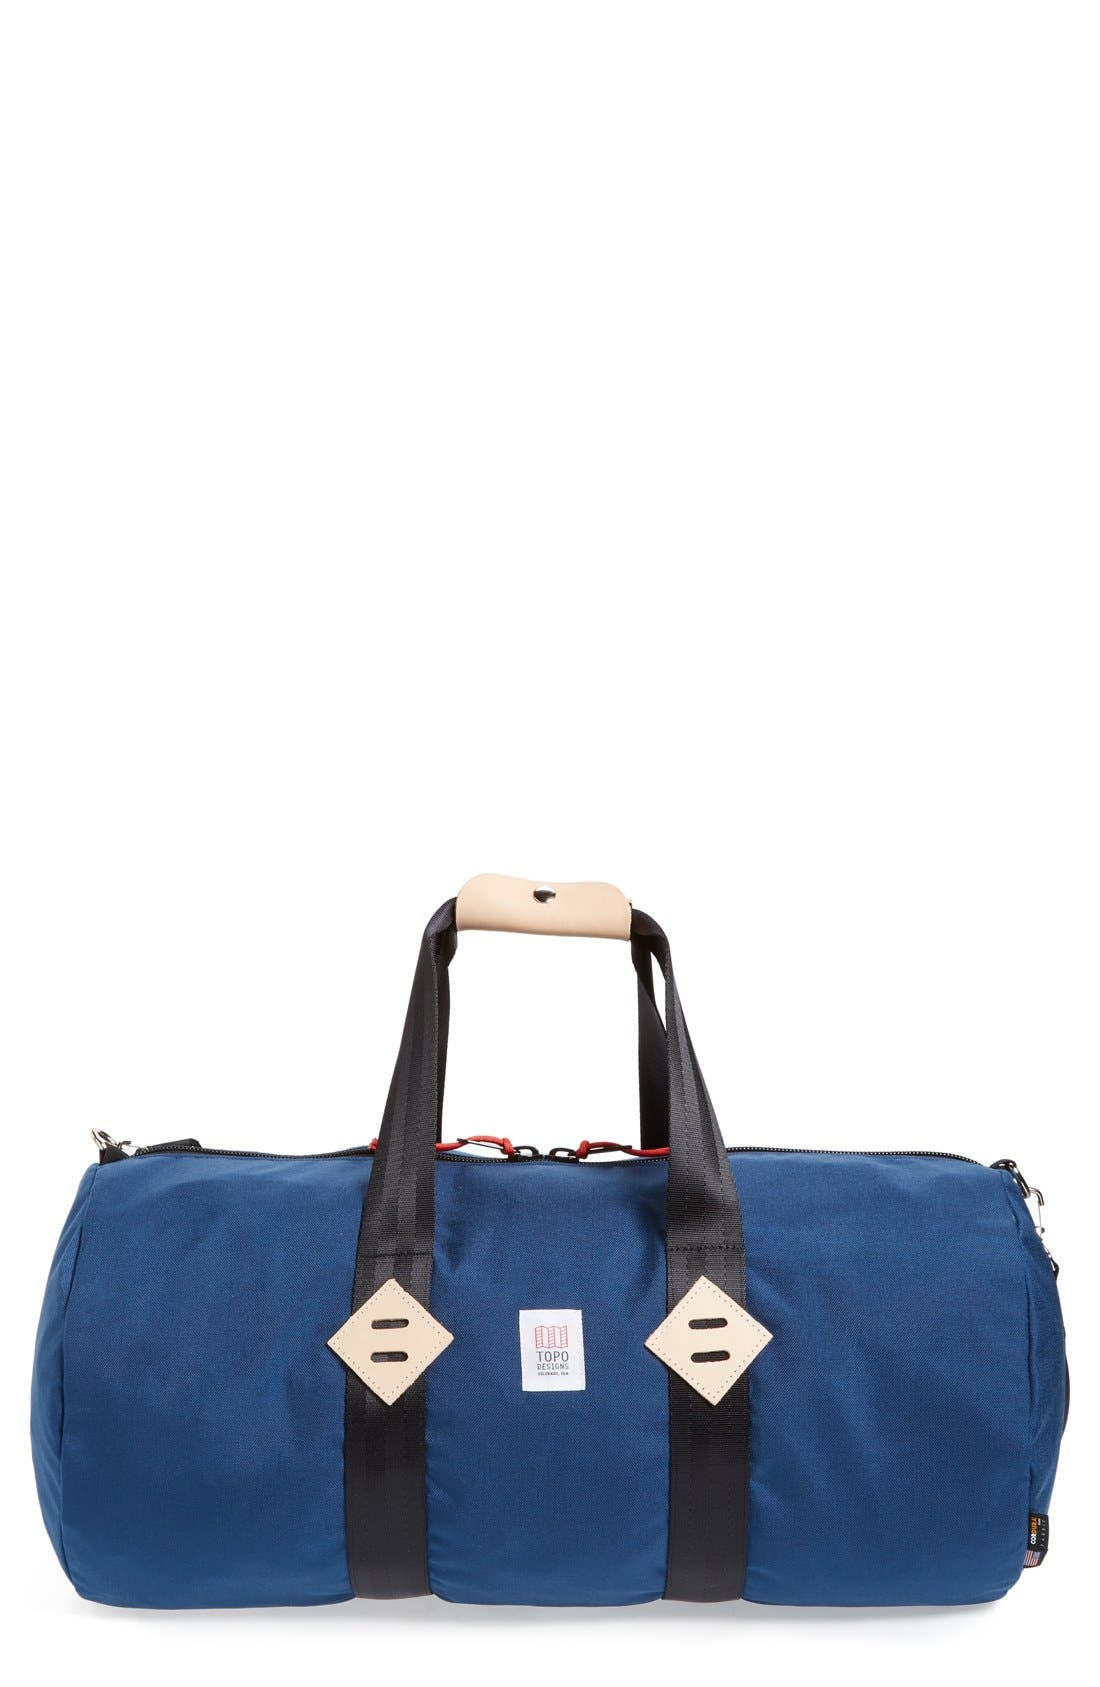 TOPO DESIGNS CLASSIC DUFFEL BAG - BLUE